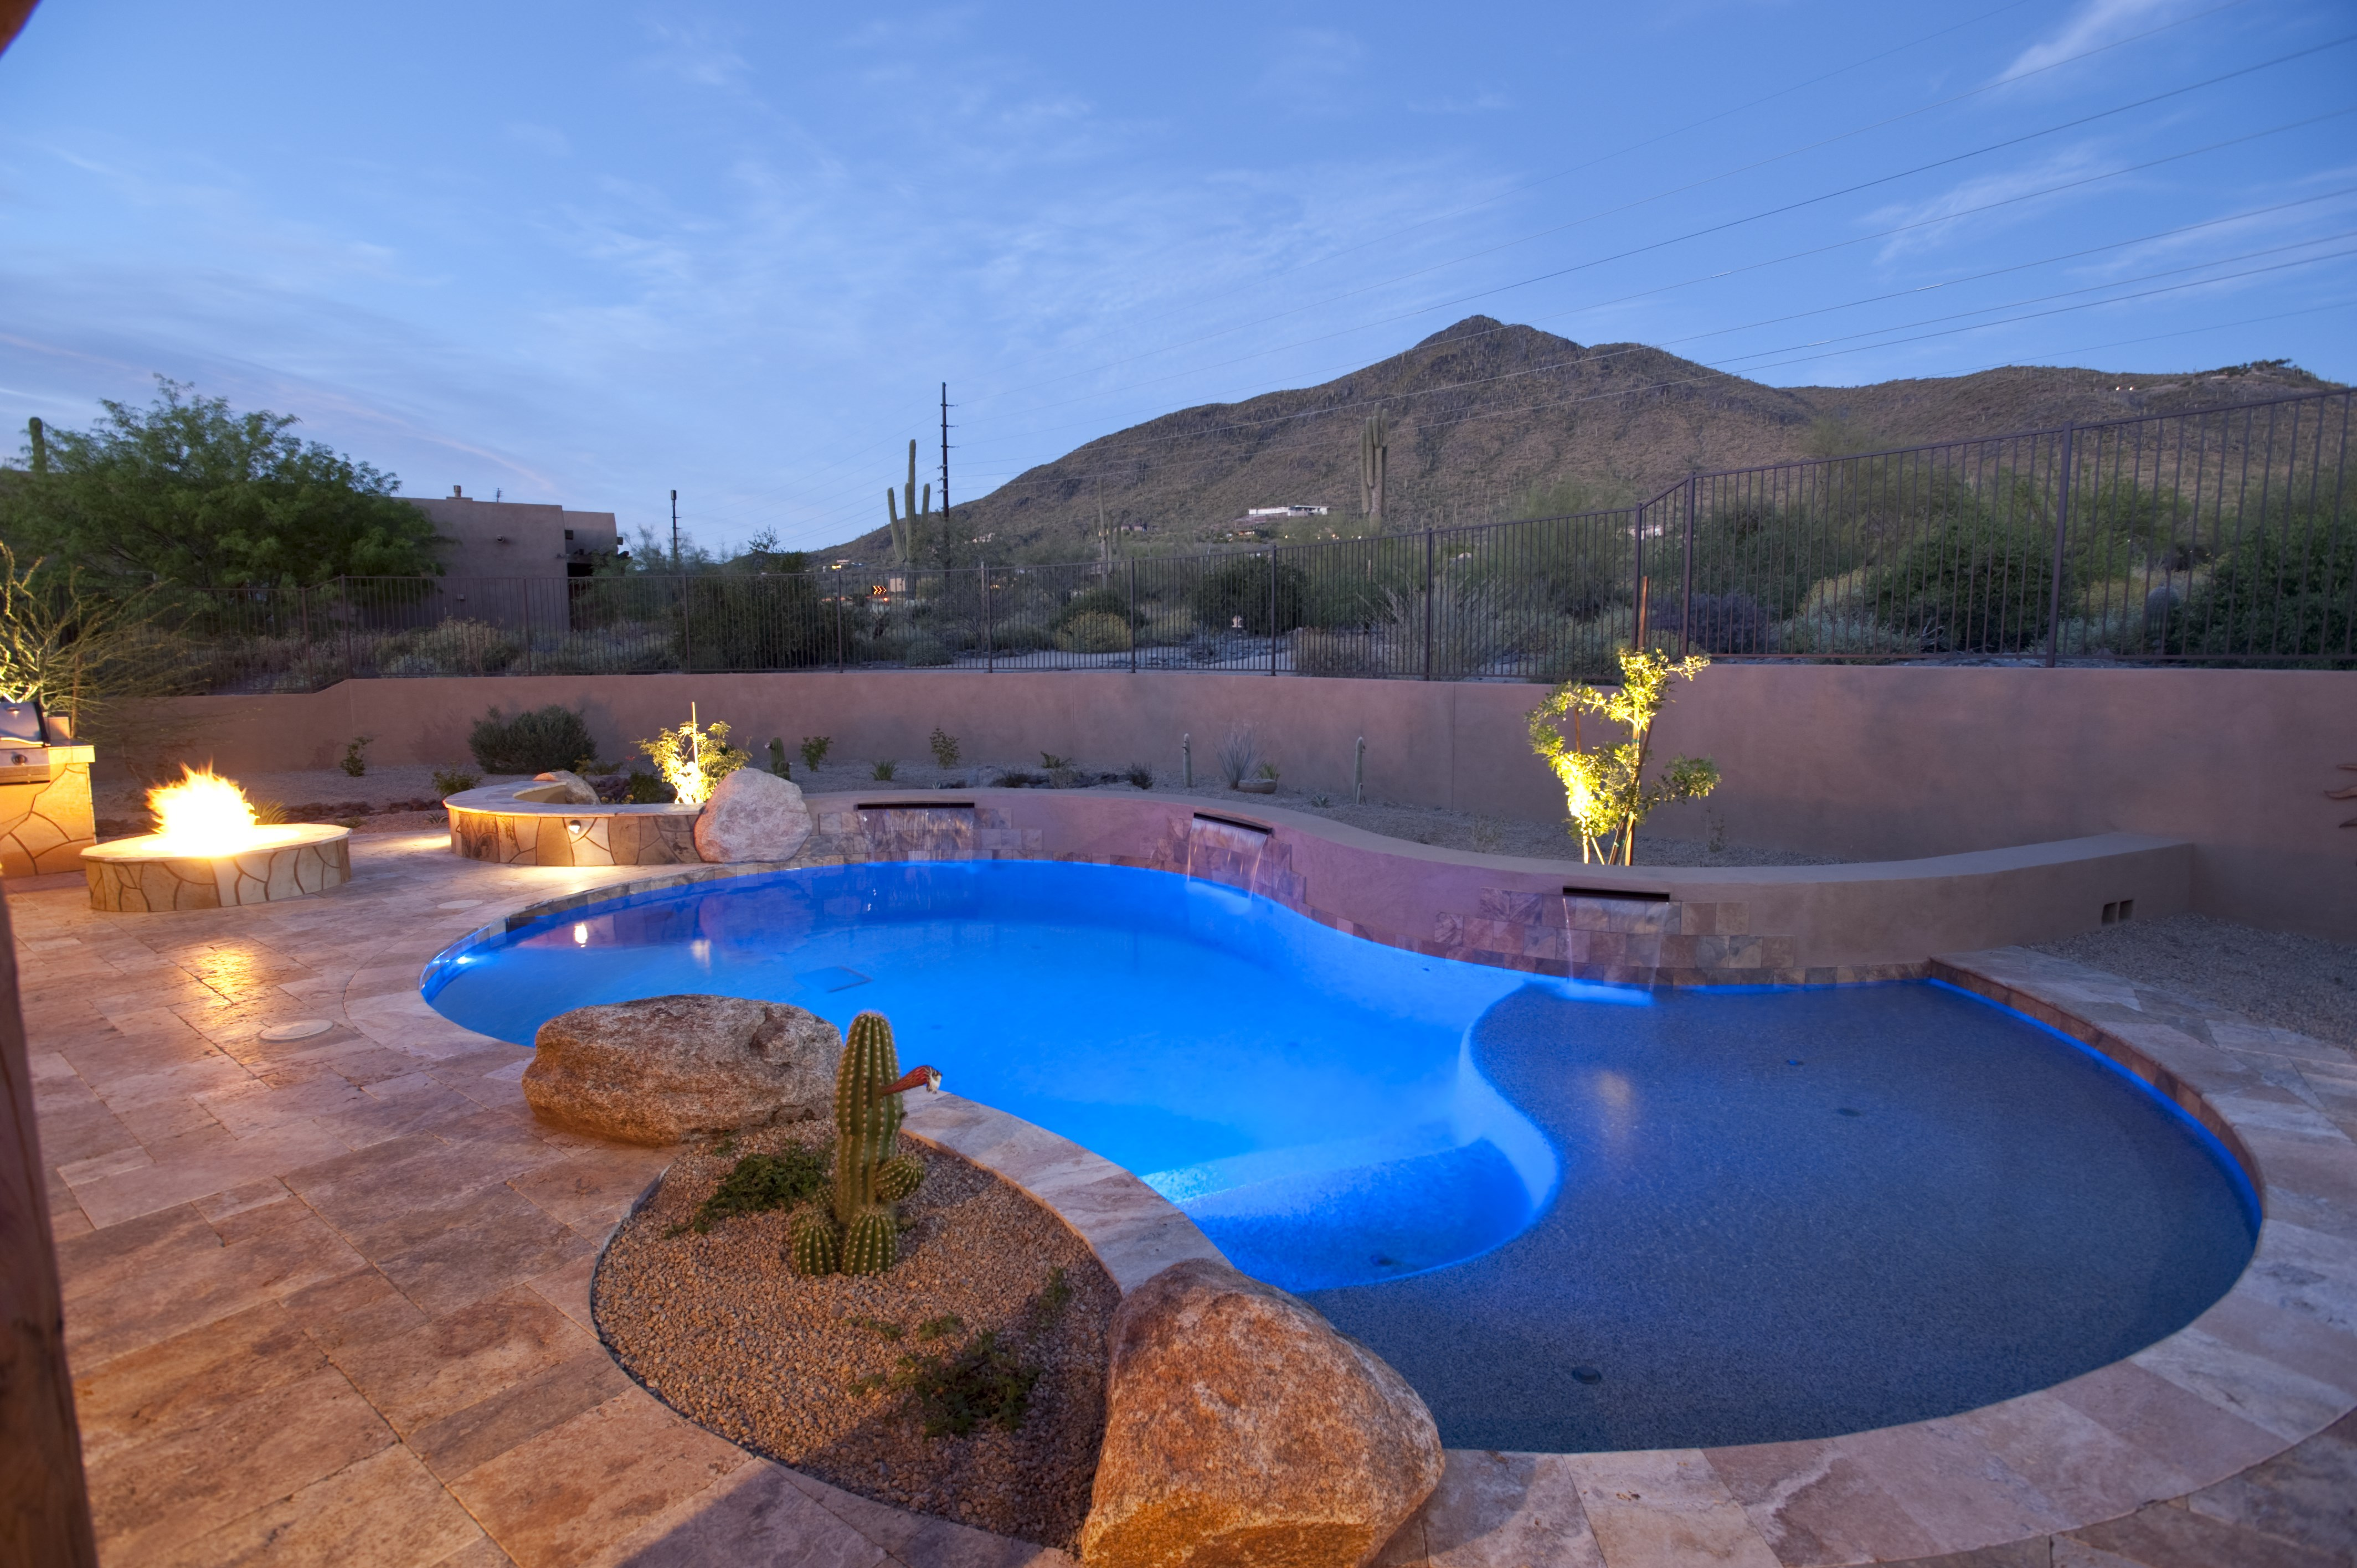 1st choice pool service llc tucson az 85745 angies list for Tempe swimming pool